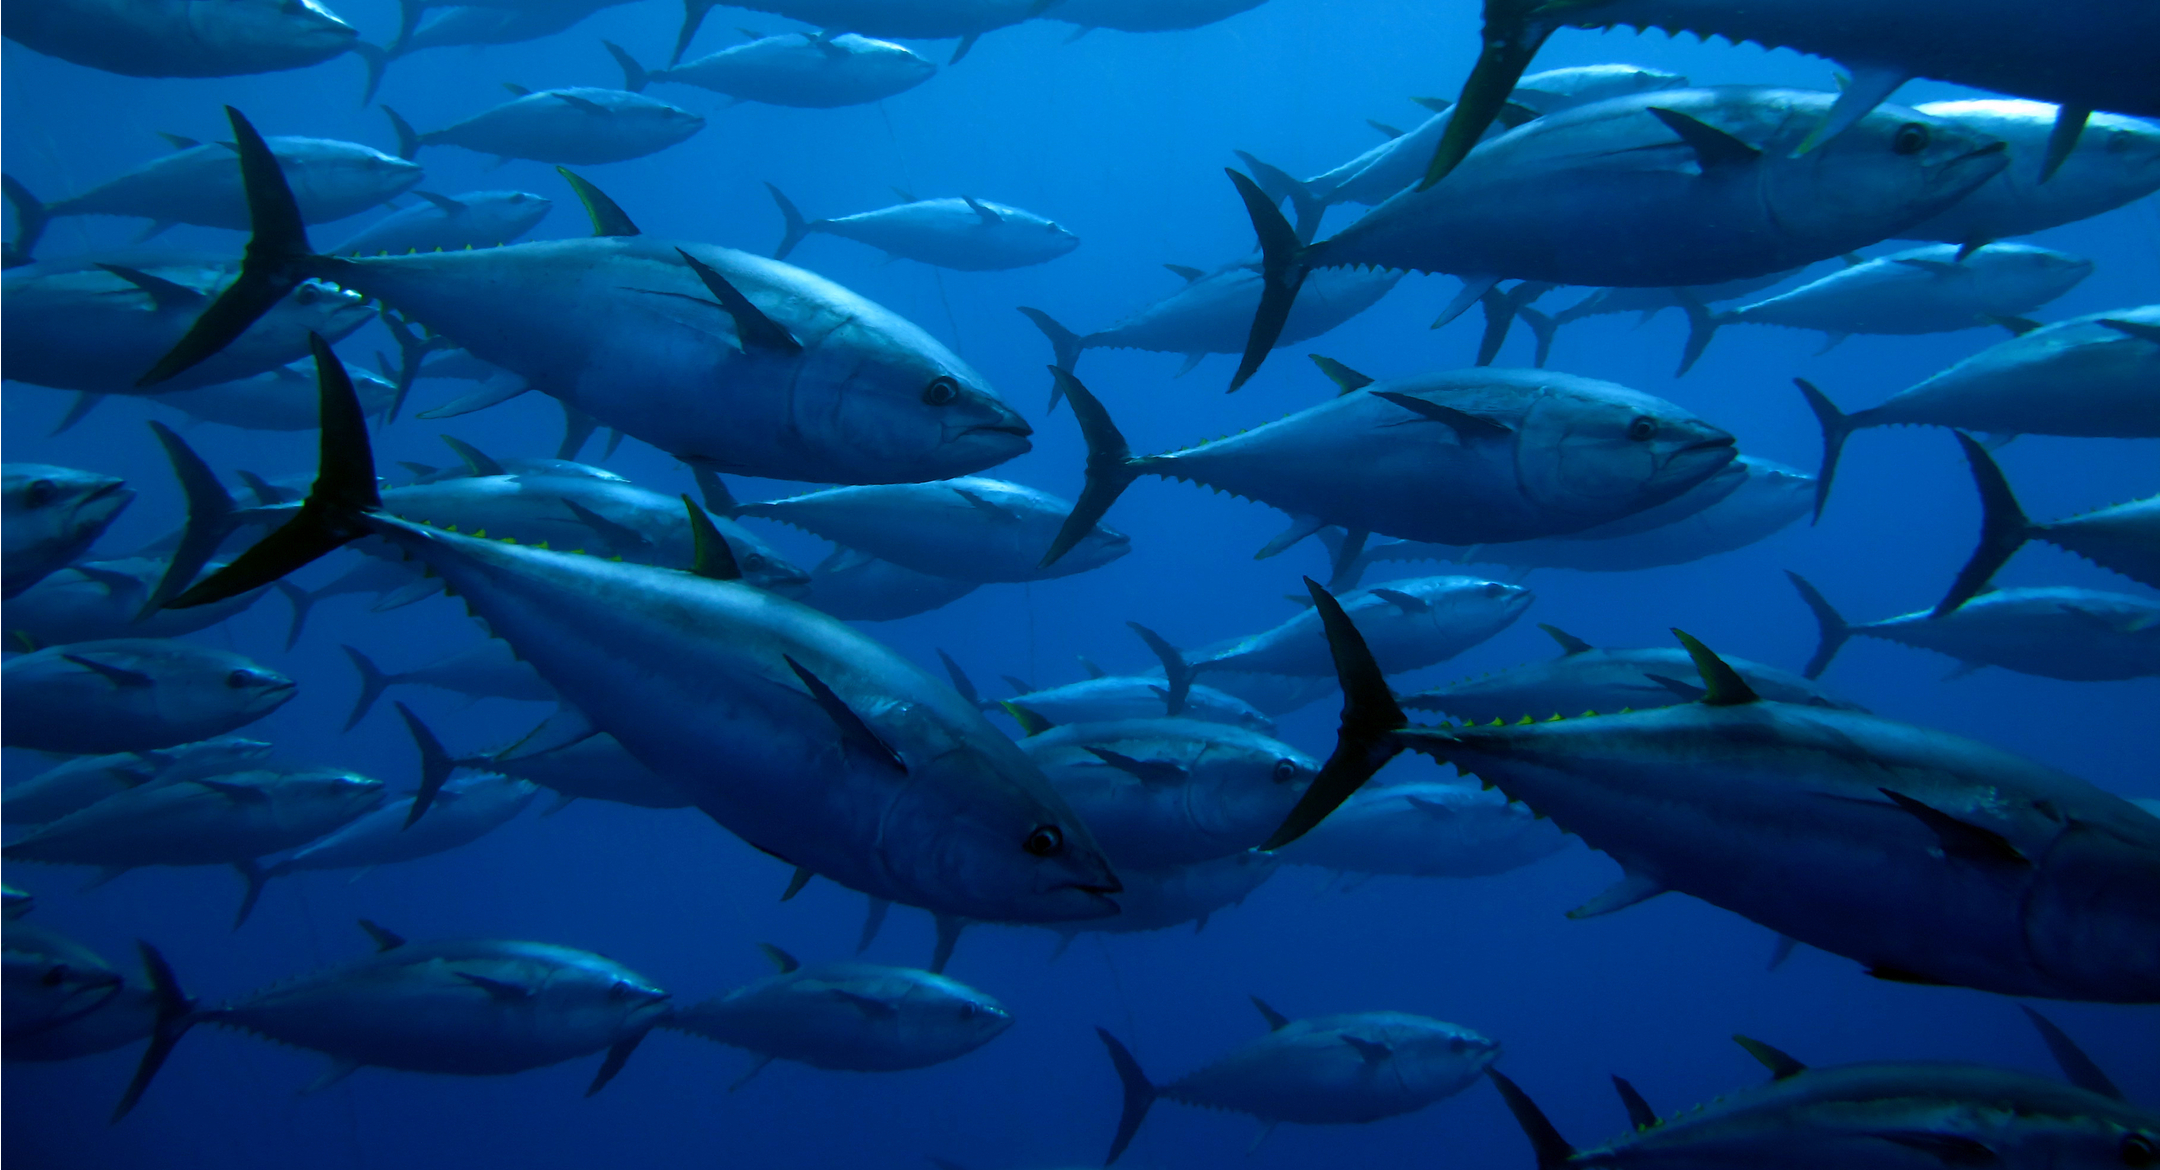 FFA fisheries ministers progress observer and crew safety and longline fisheries development